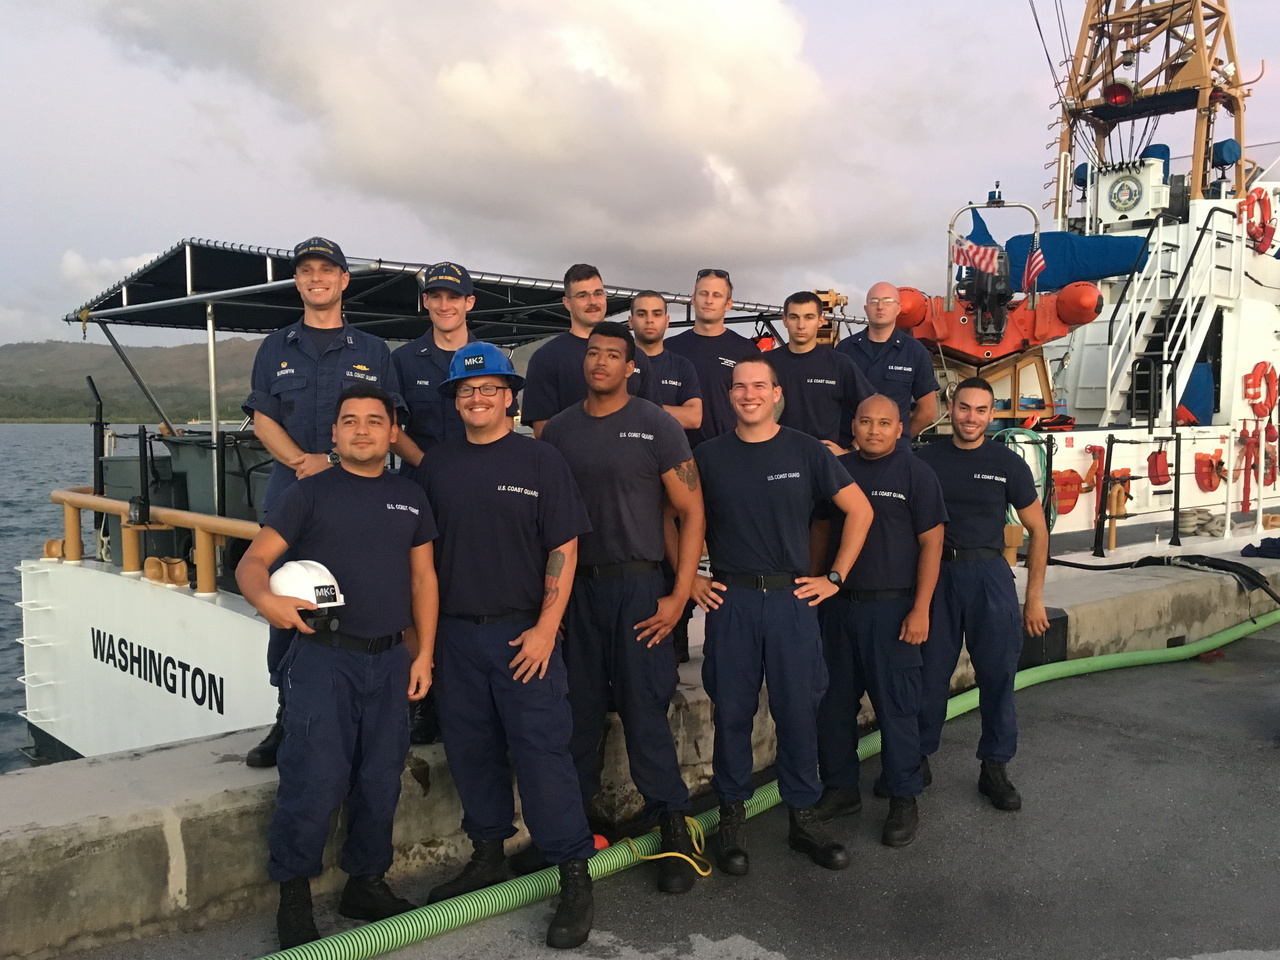 The command and crew of the U.S. Coast Guard Cutter Washington at the dock in Apra Harbor.